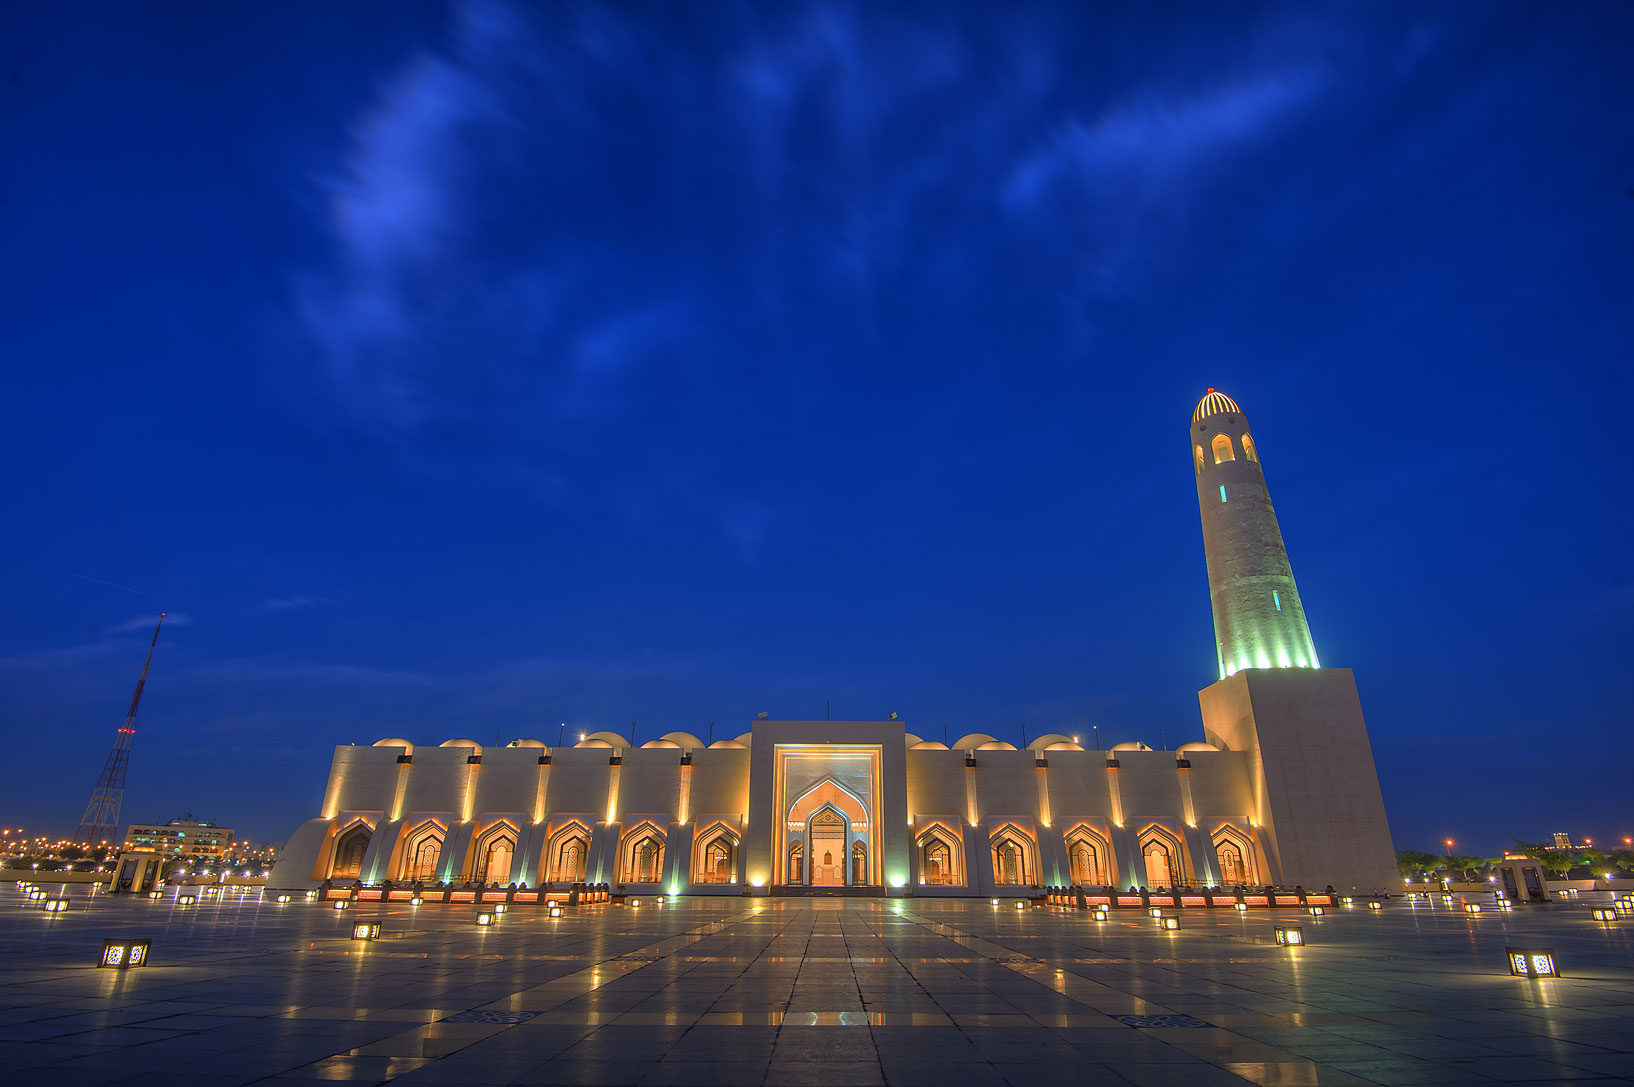 State Mosque (Sheikh Muhammad Ibn Abdul Wahhab Mosque) at morning dusk. Doha, Qatar